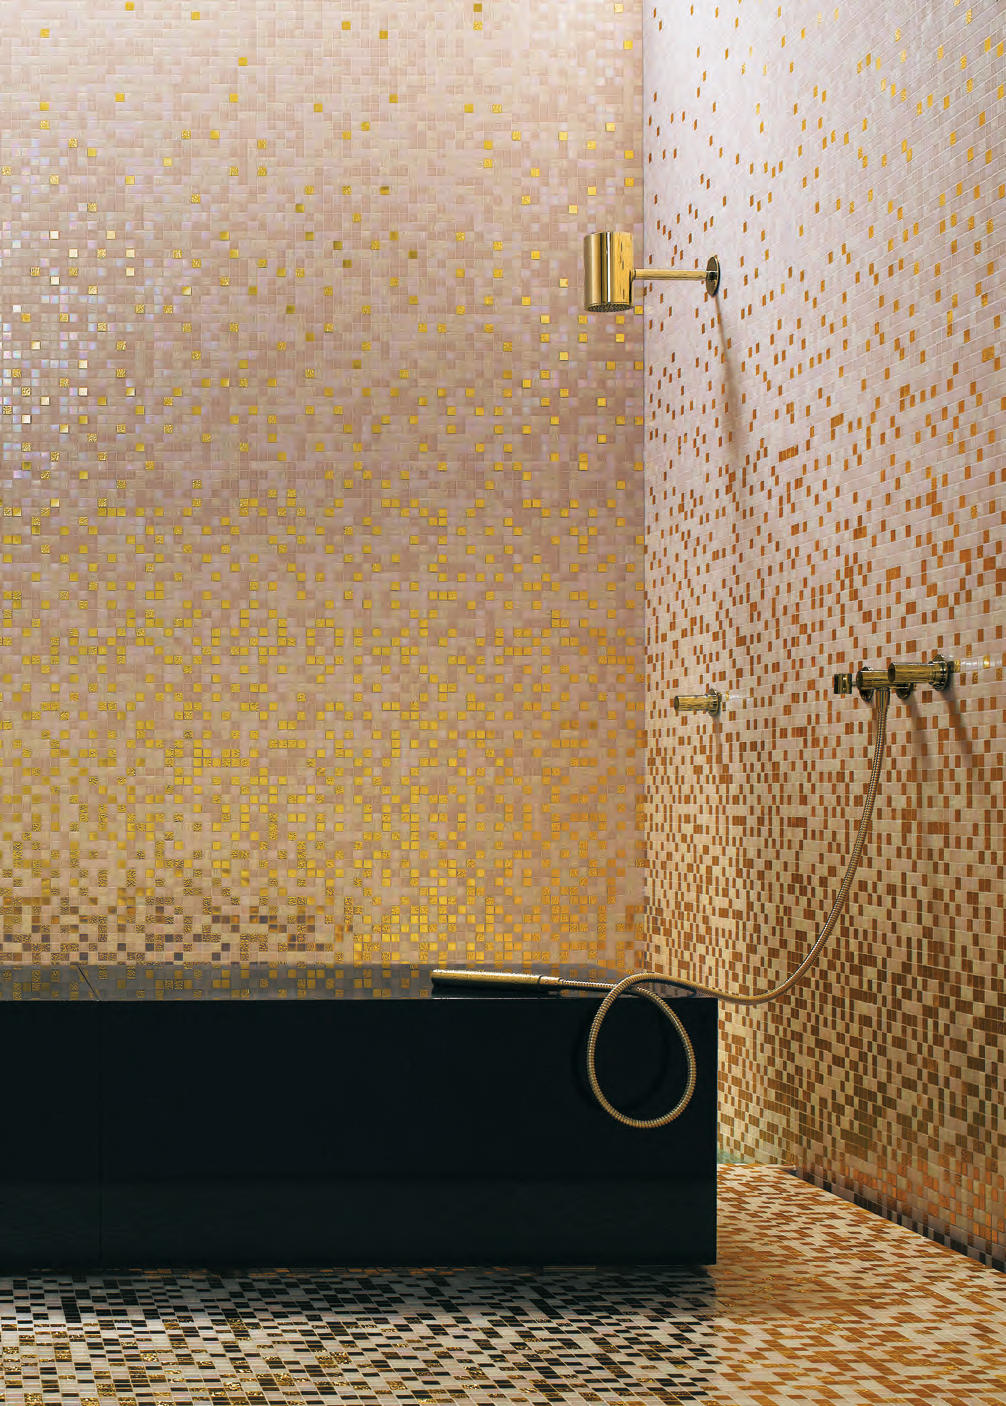 stella alpina mix 1 - mosaïques de bisazza | architonic